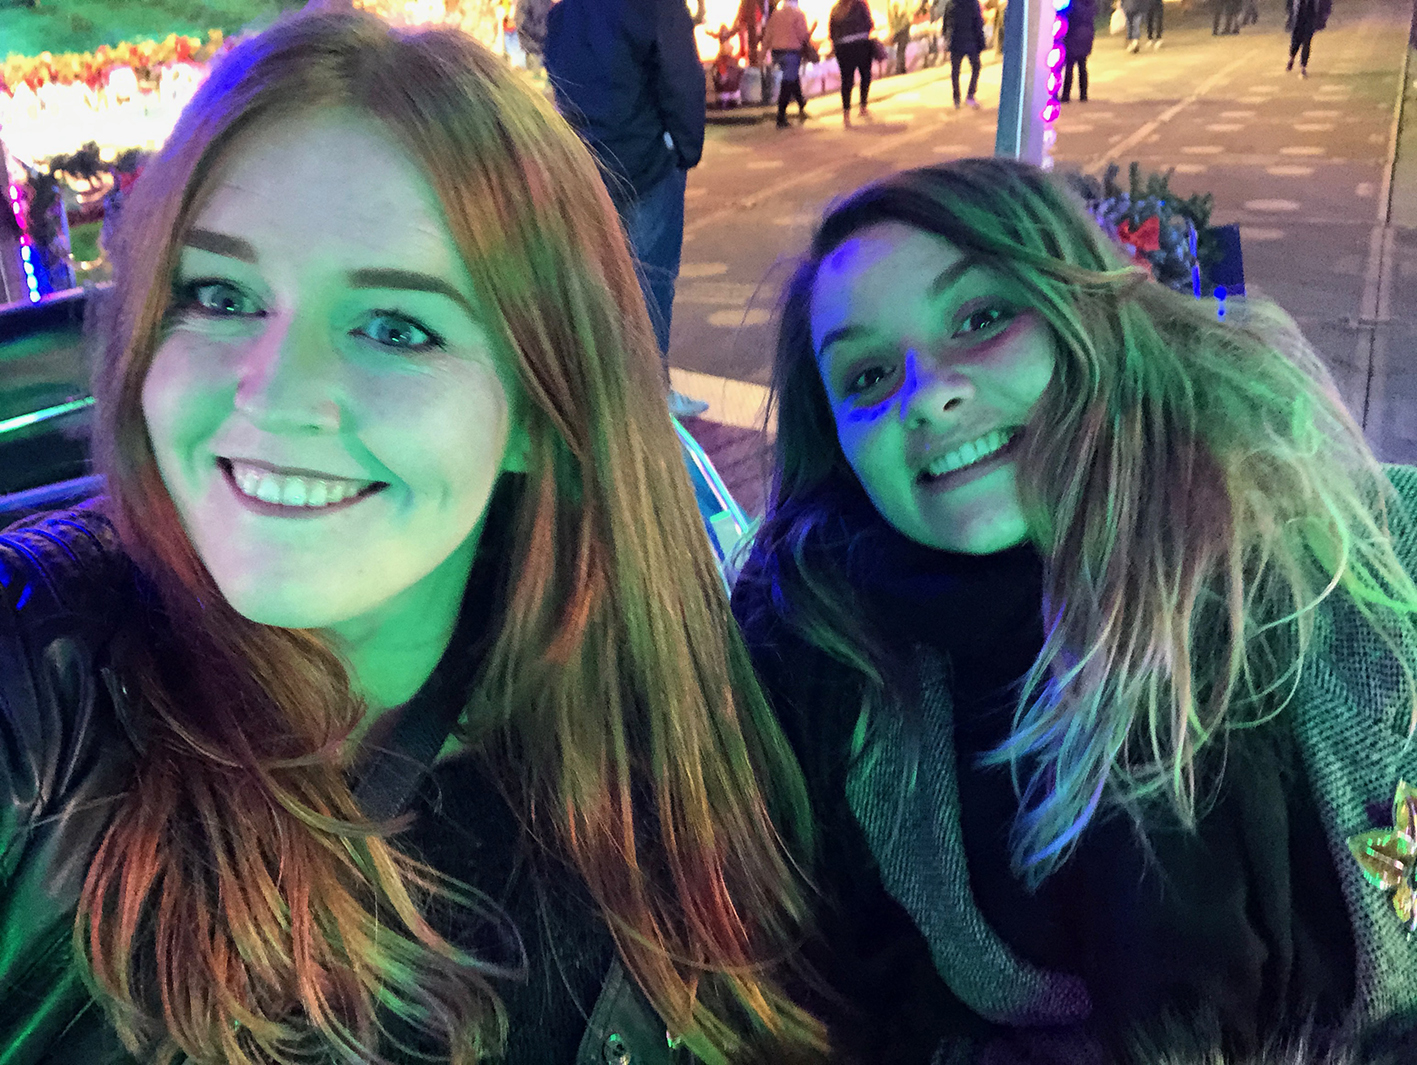 A selfie of Chan and I on a fairground waltzer ride at Winterville winter festival